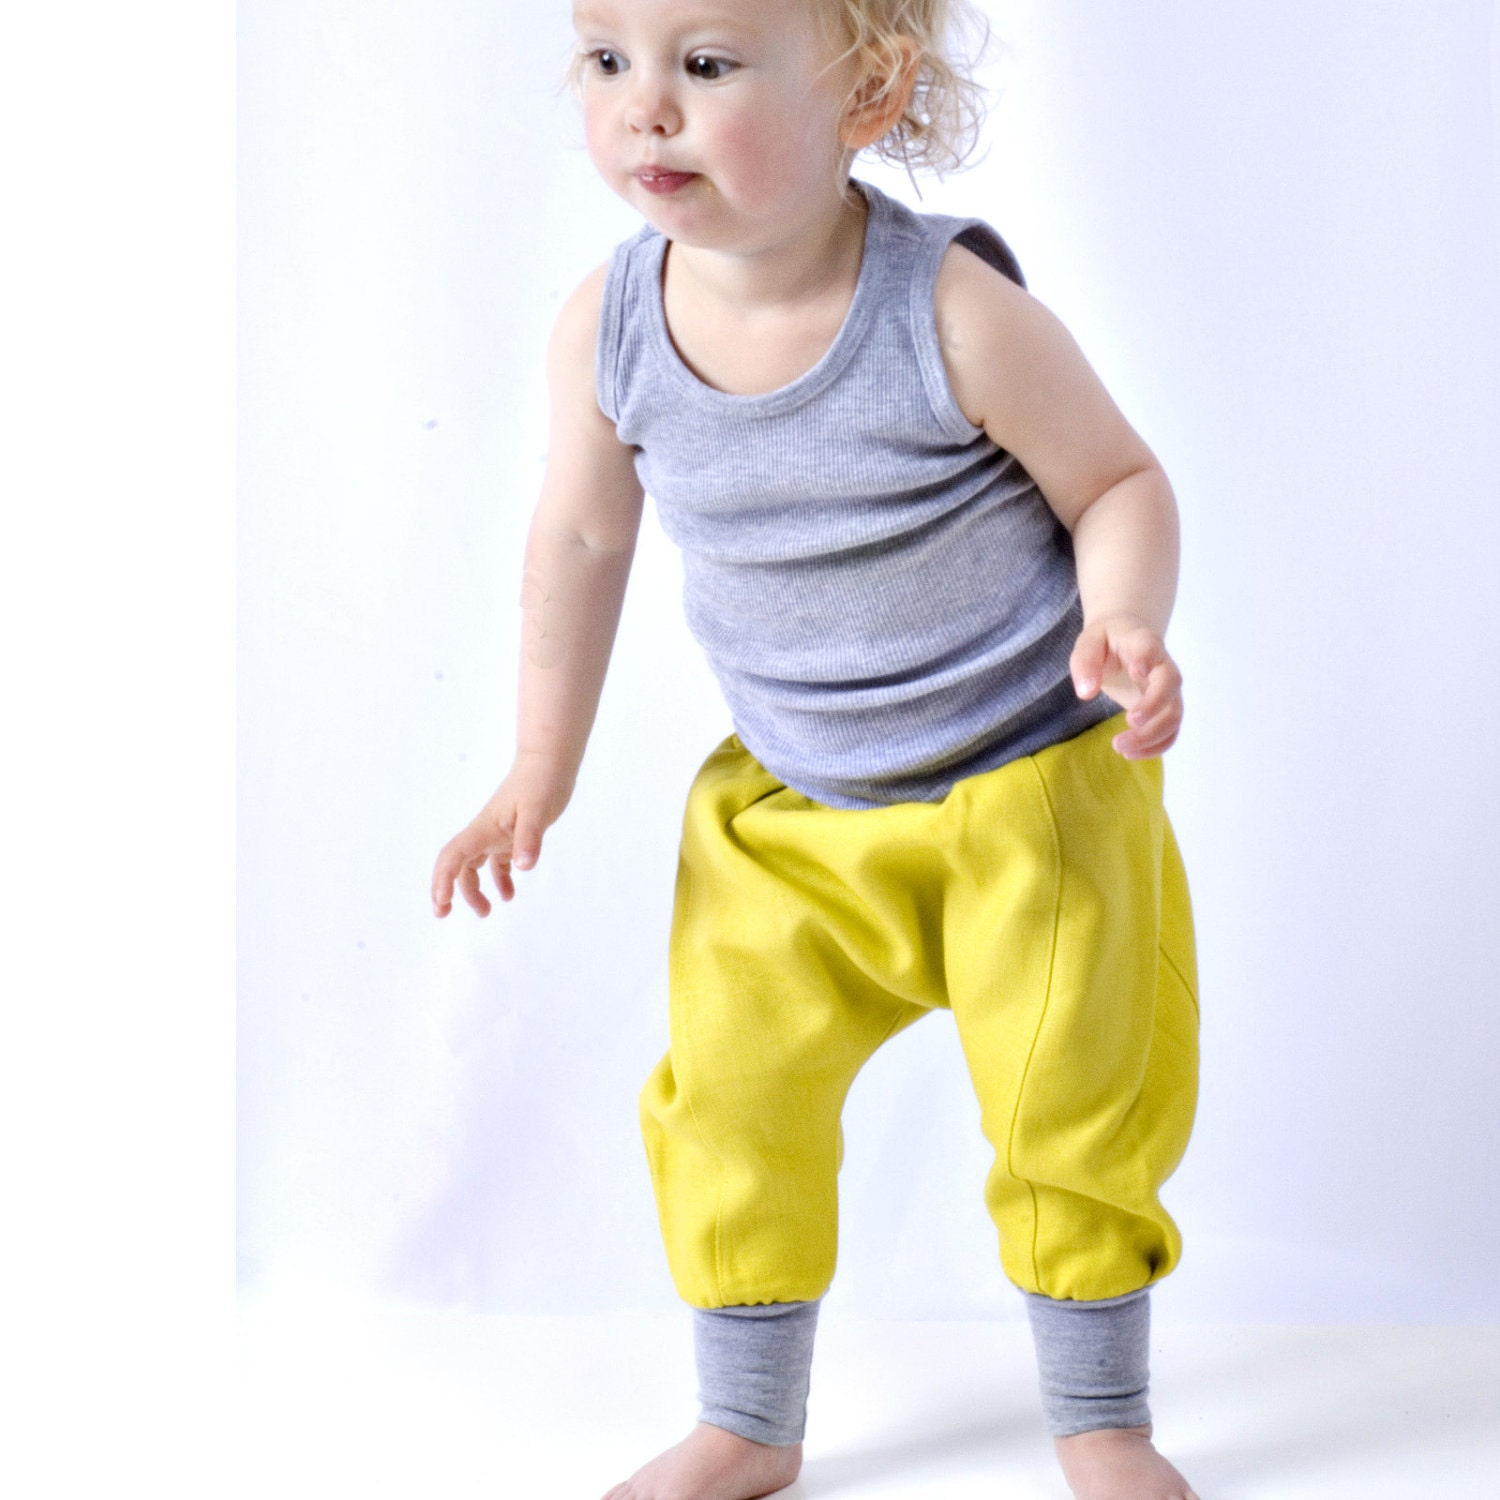 downtown aladdin pants - toddler - lemon/heather grey - unisex boy/girl bottoms - modern bright